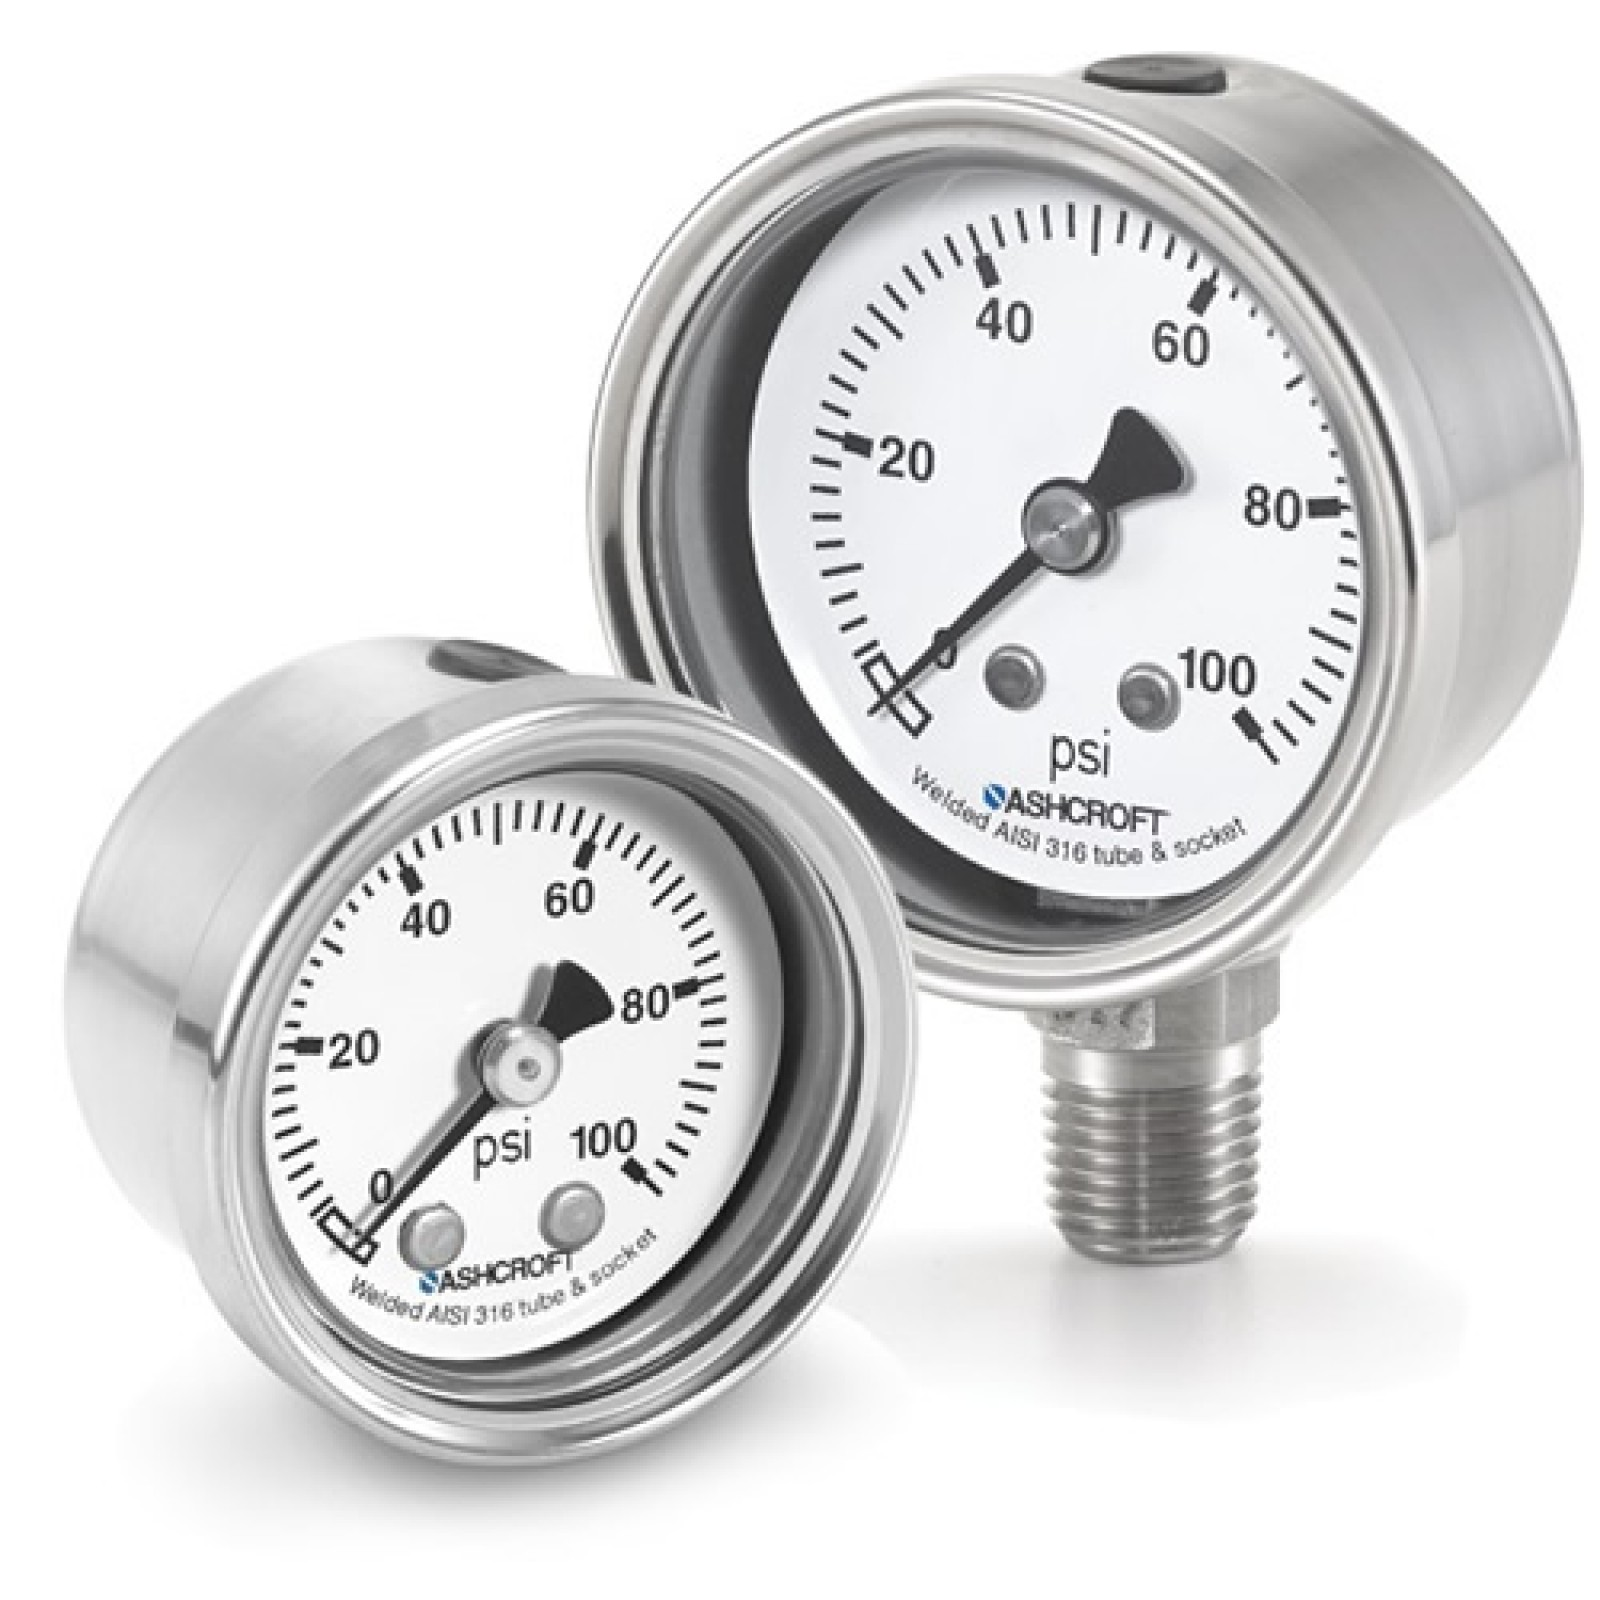 "63 1008S 02B XLL 30#/KP - Pressure Gauge, 63mm stainless 1/4"" NPT Back conn & Case, Plus Performance, 0/30 psi"